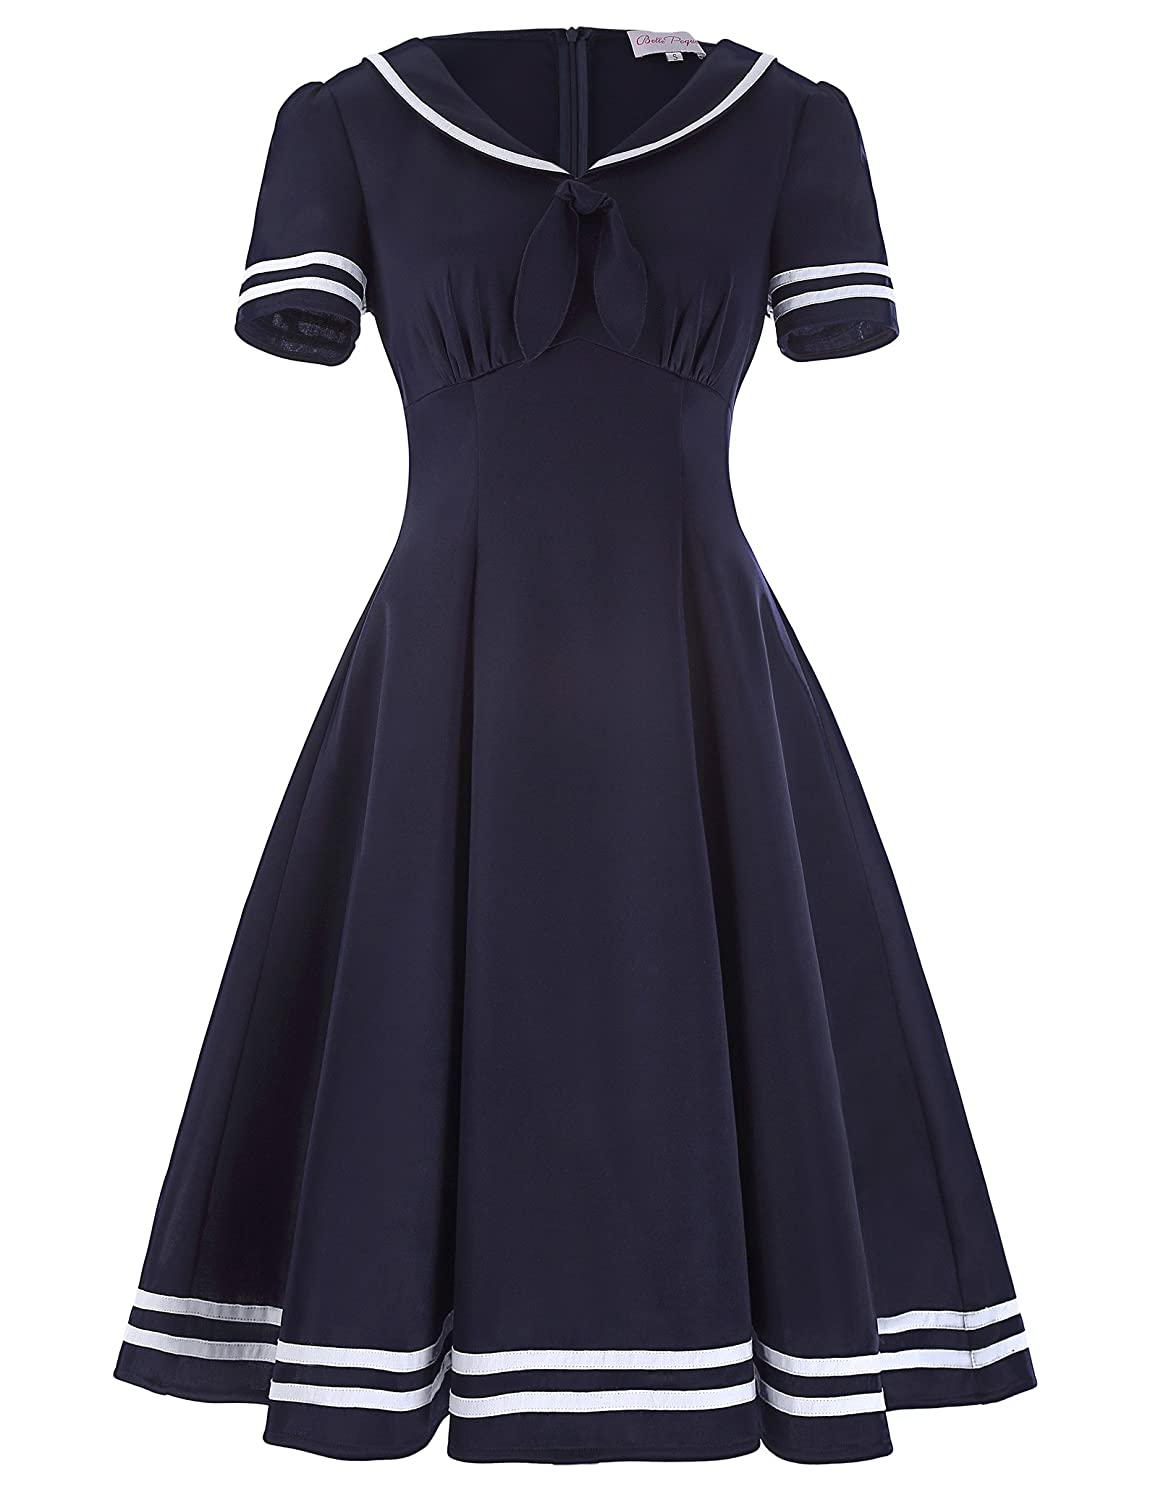 1950s Costumes- Poodle Skirts, Grease, Monroe, Pin Up, I Love Lucy Belle Poque Womens Retro Sailor Dress Short Sleeve Cocktail Party Swing Dress $29.99 AT vintagedancer.com